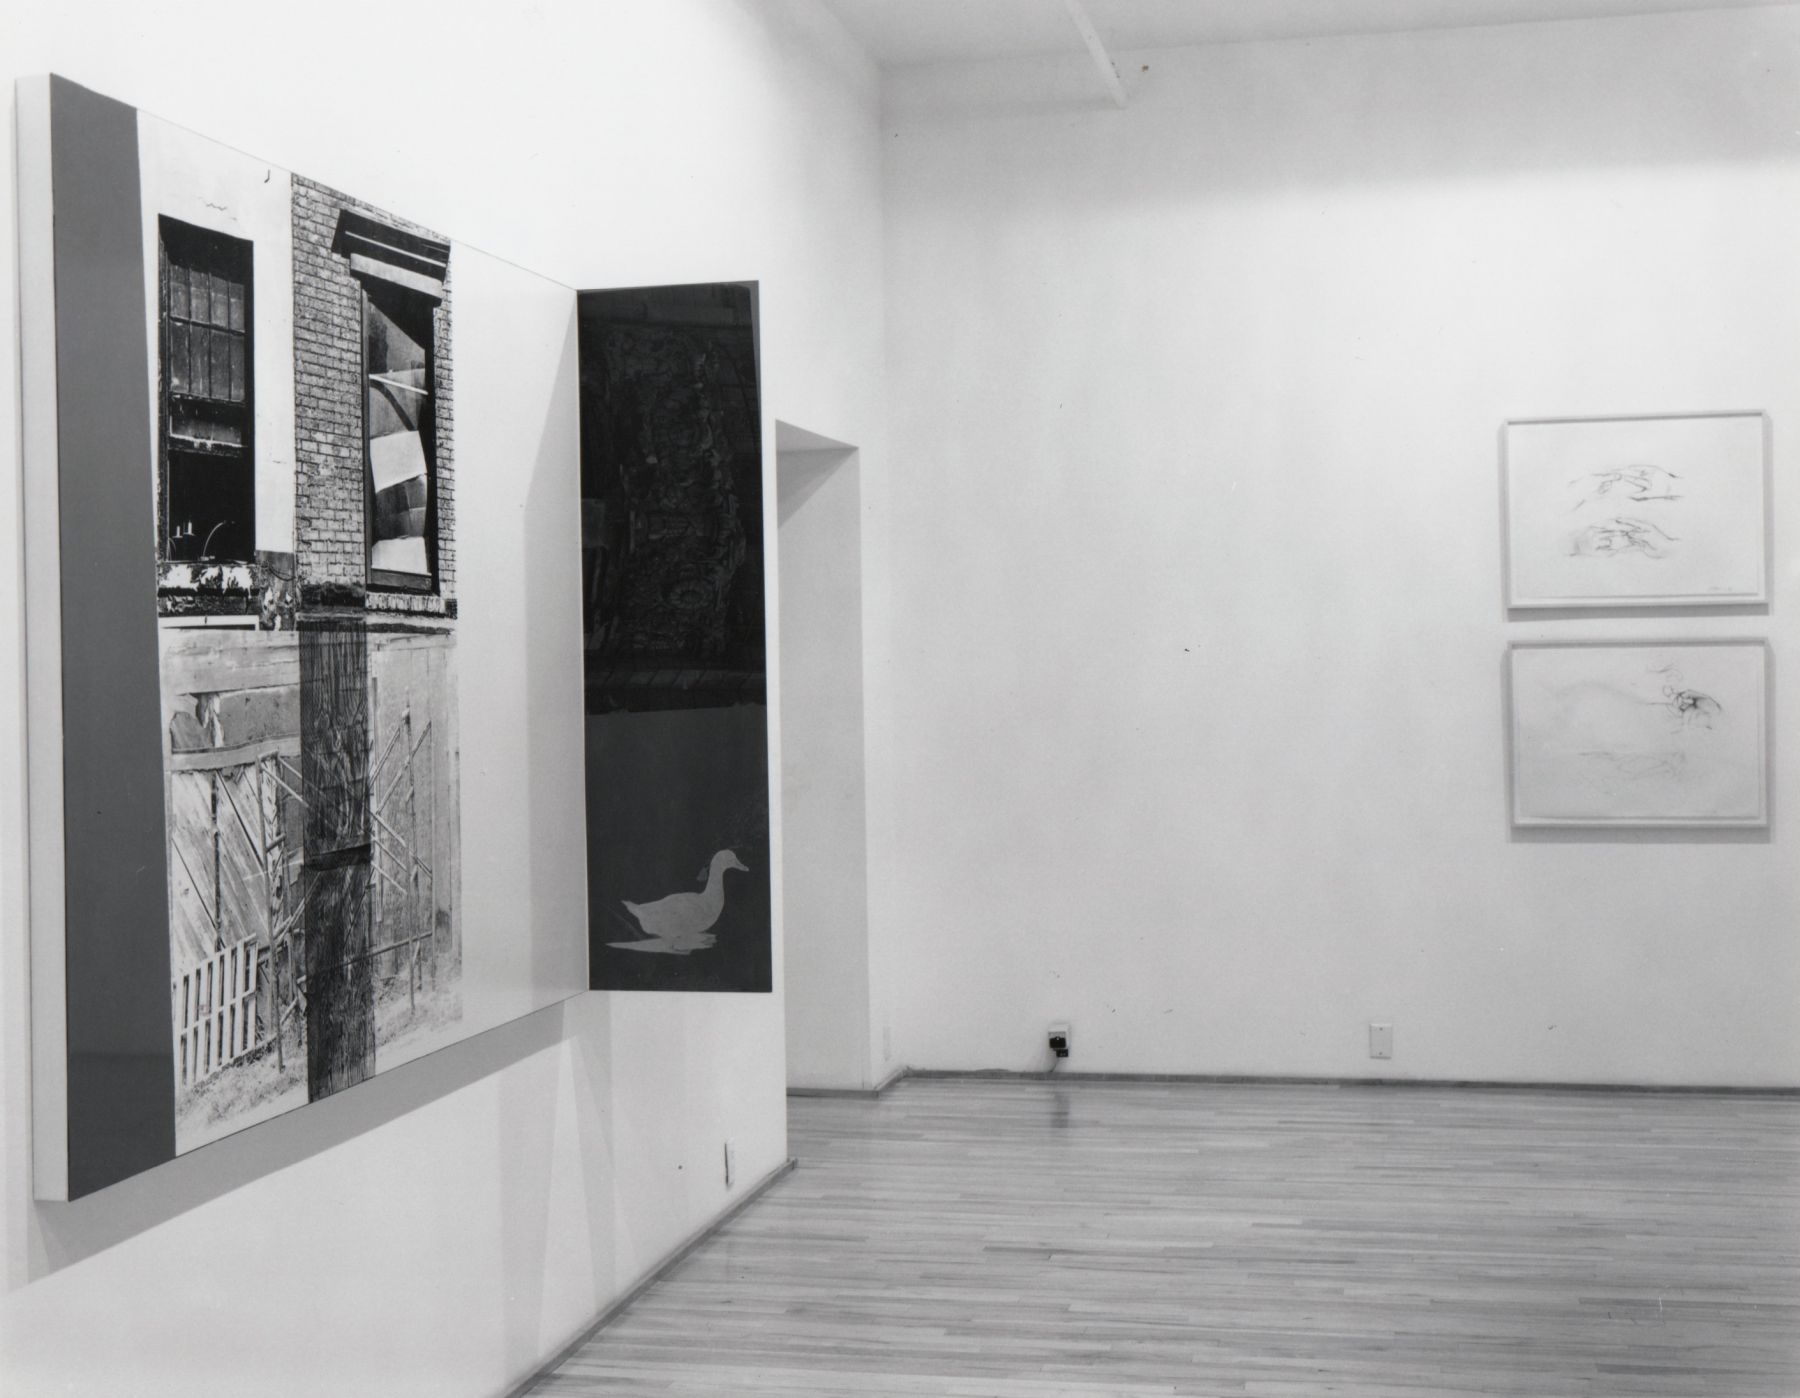 Installation view, Group Exhibition, 578 BROADWAY